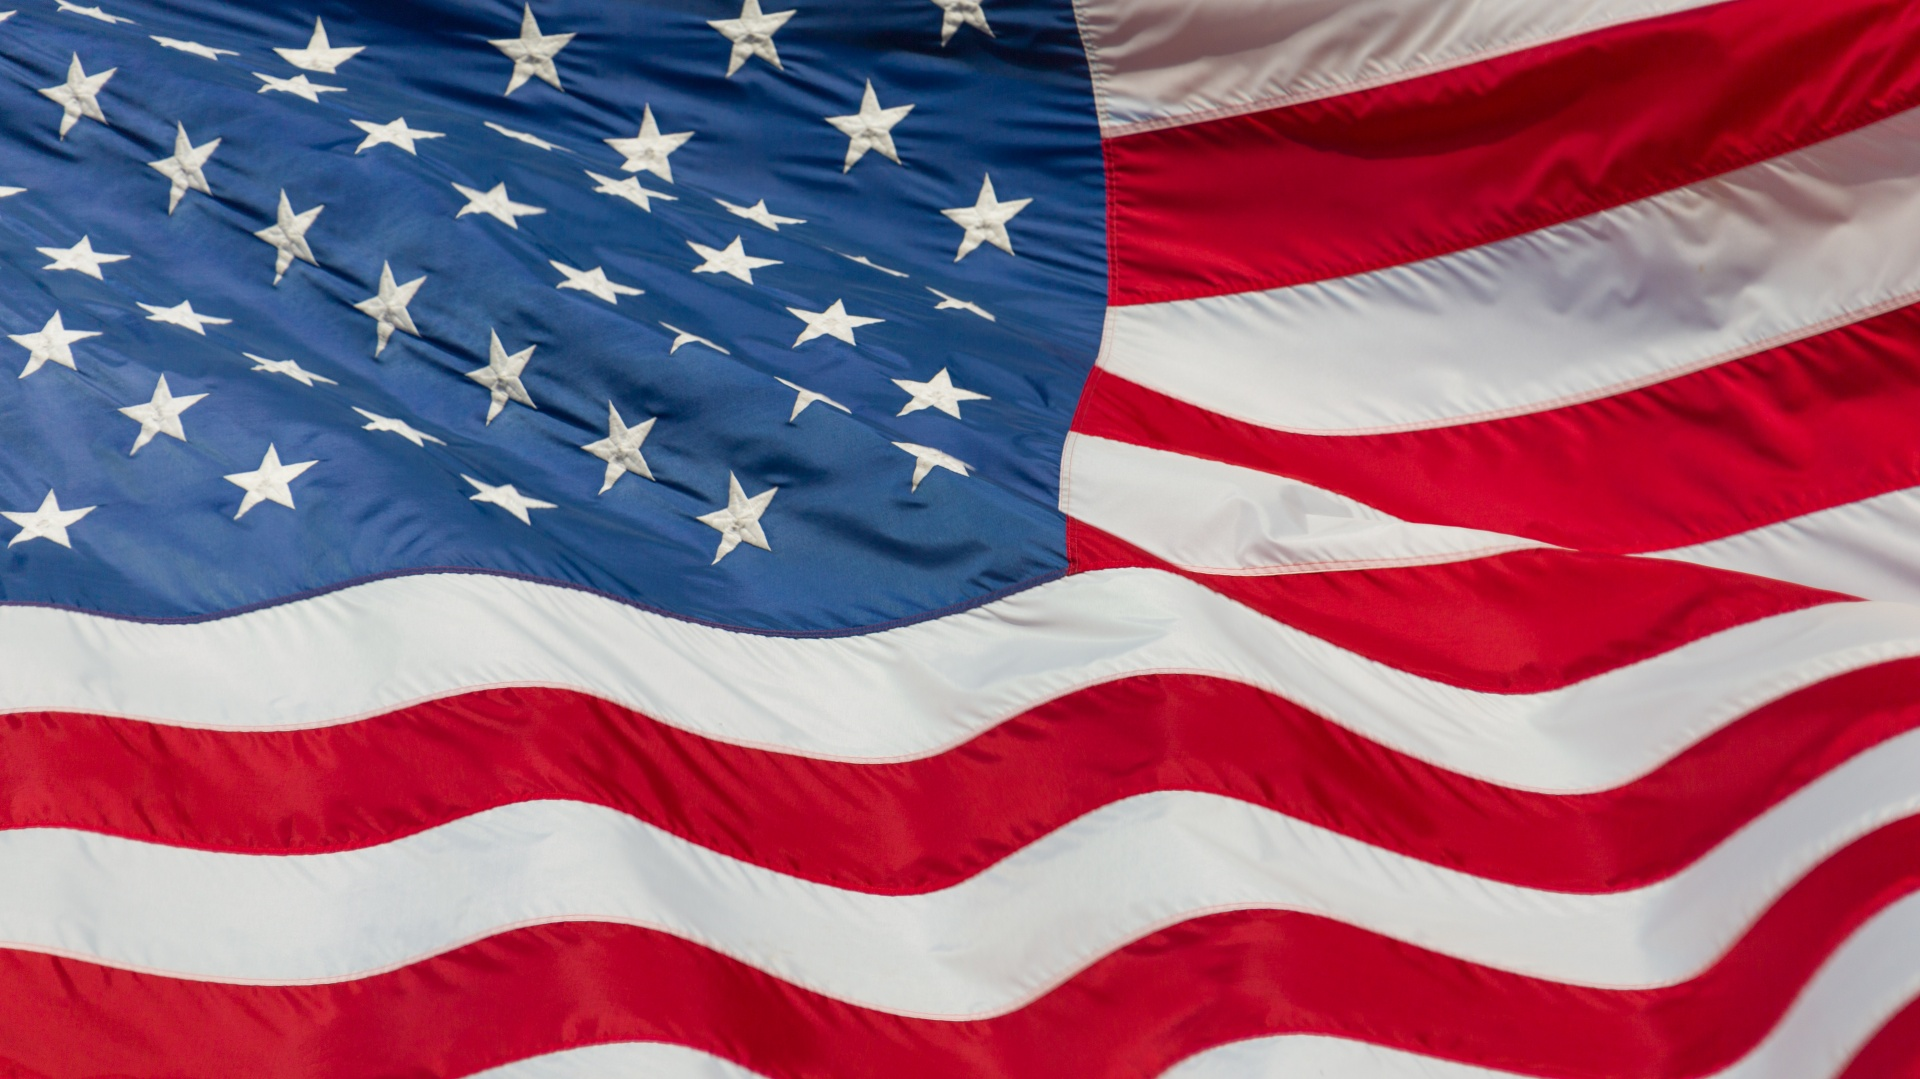 american-flag-background-1477488261IIY